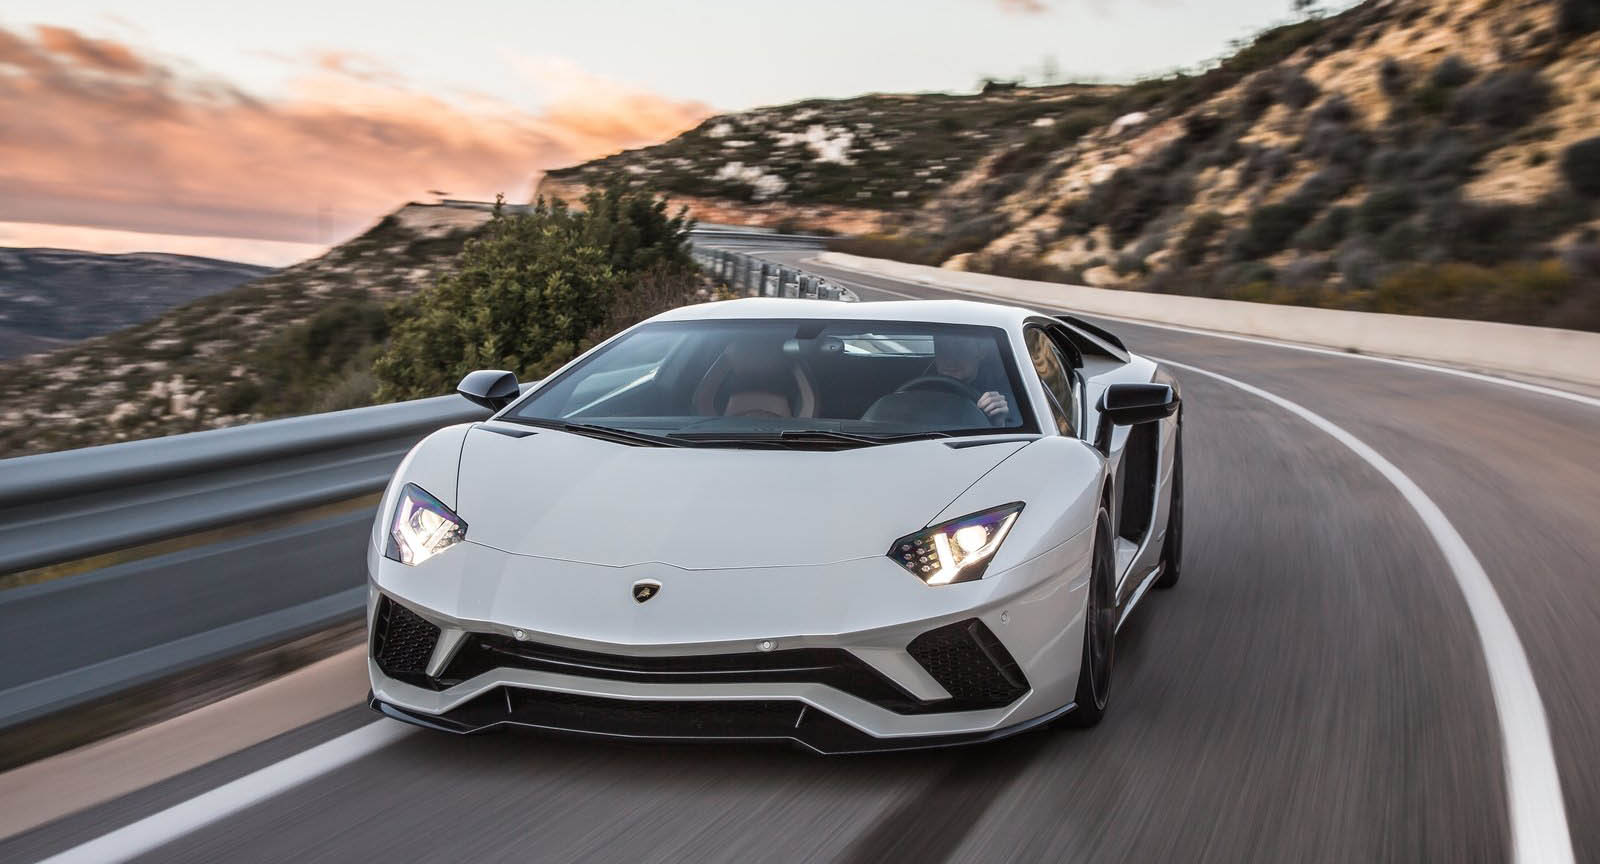 Don T Overfill Your Lamborghini Aventador Or It Could Catch Fire Carscoops